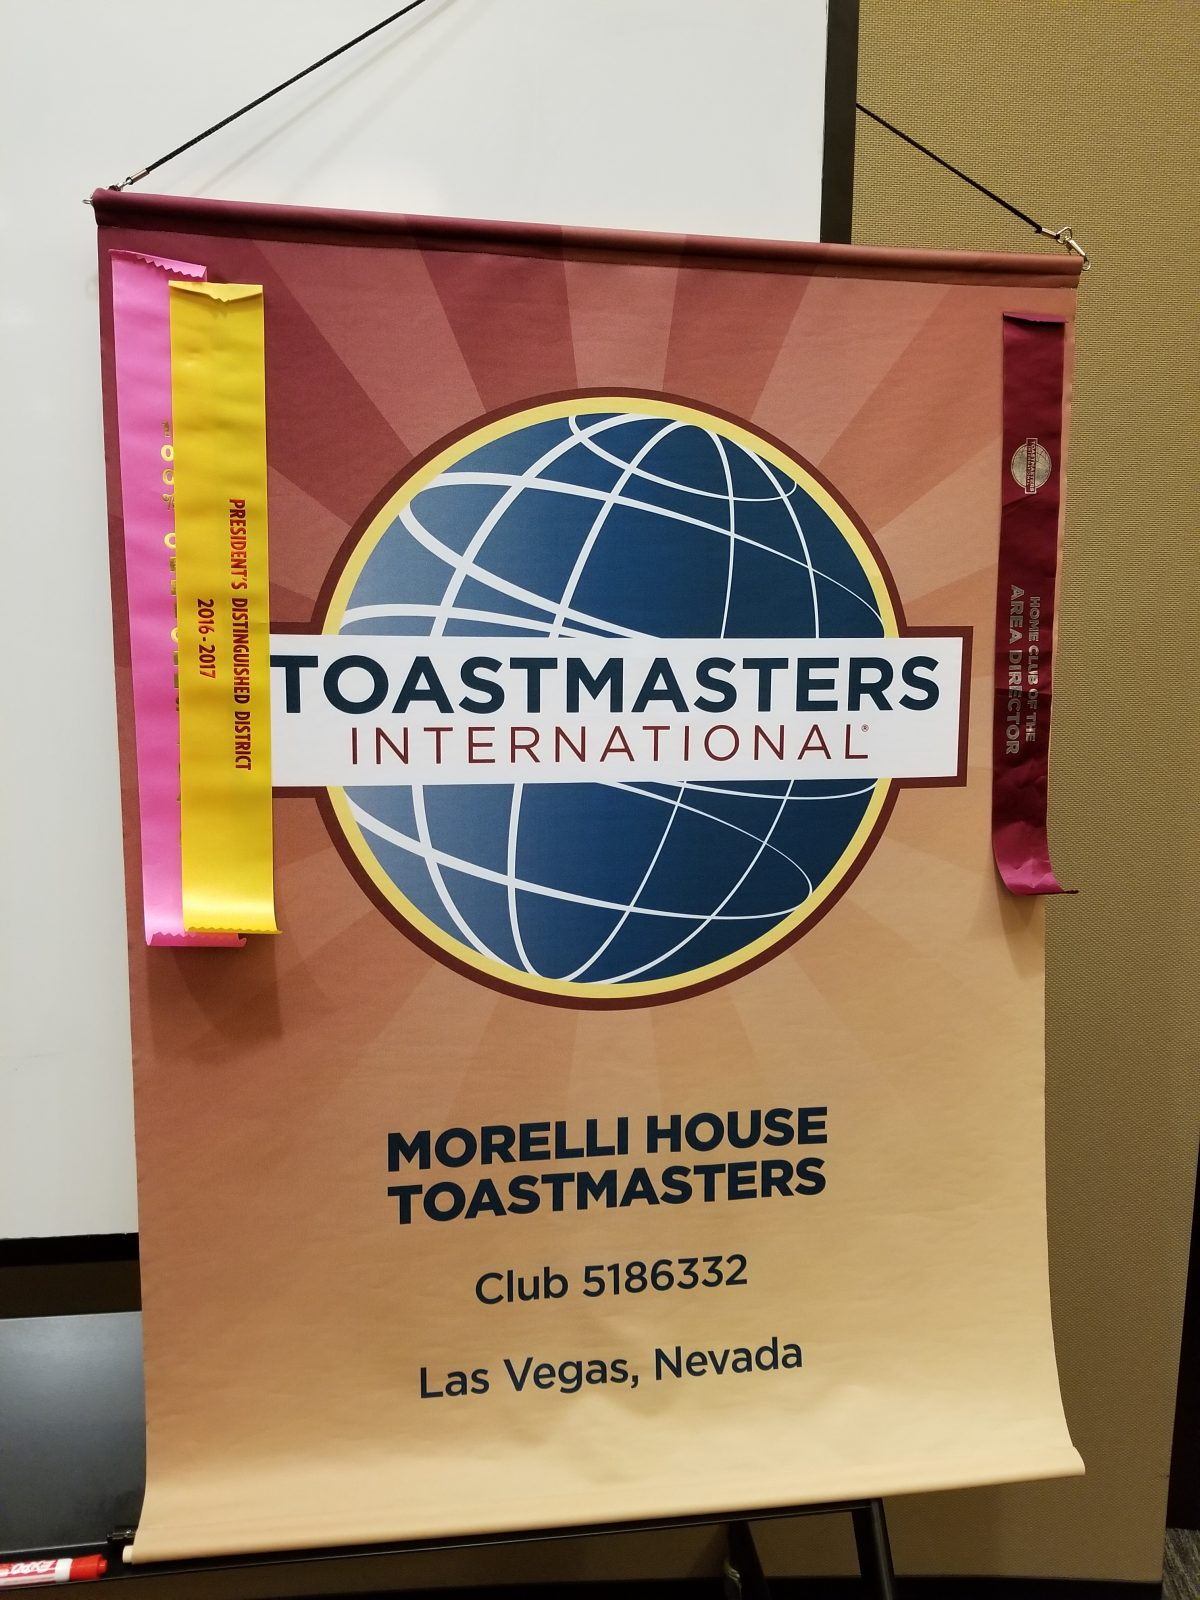 Toastmasters if Perfect for Commercial Real Estate Professionals